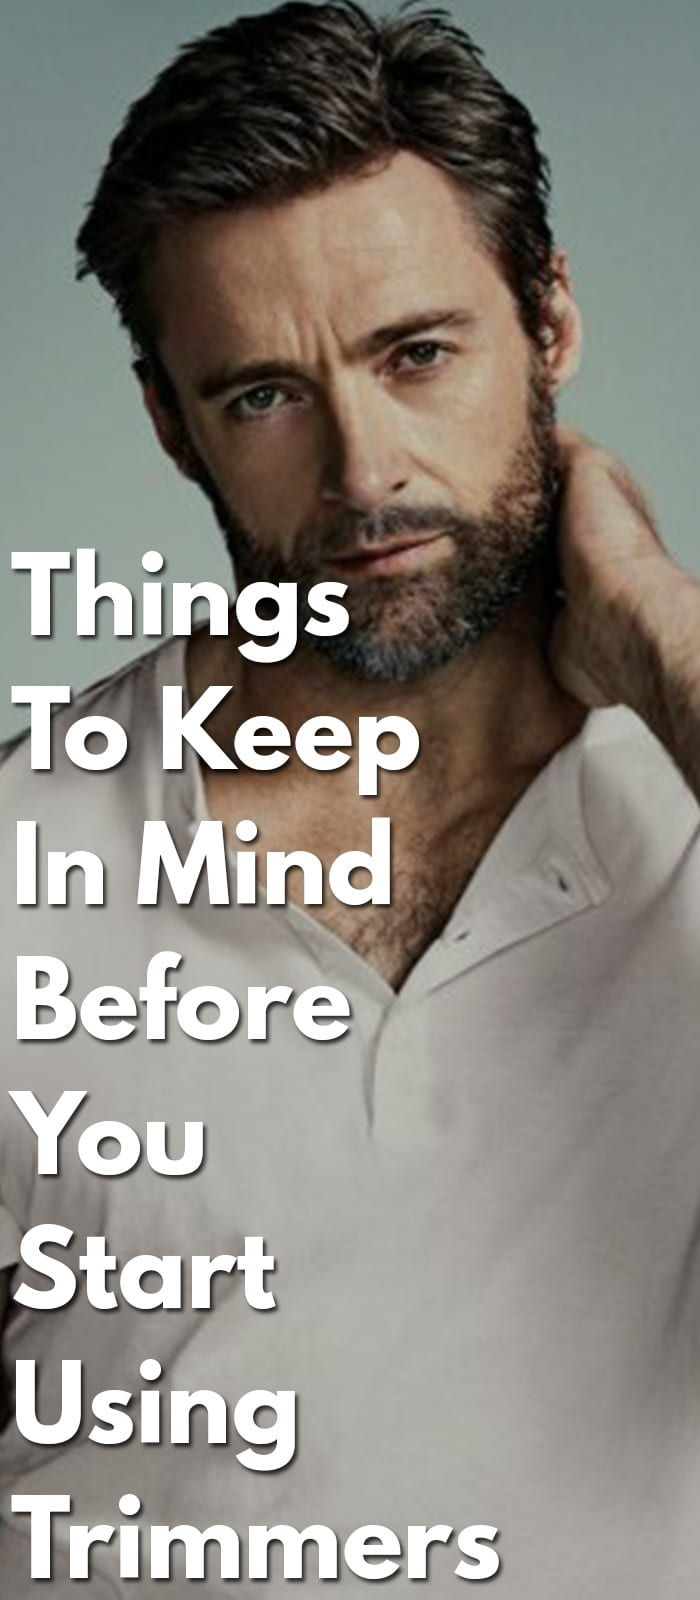 Things-To-Keep-In-Mind-Before-You-Start-Using-Trimmers.